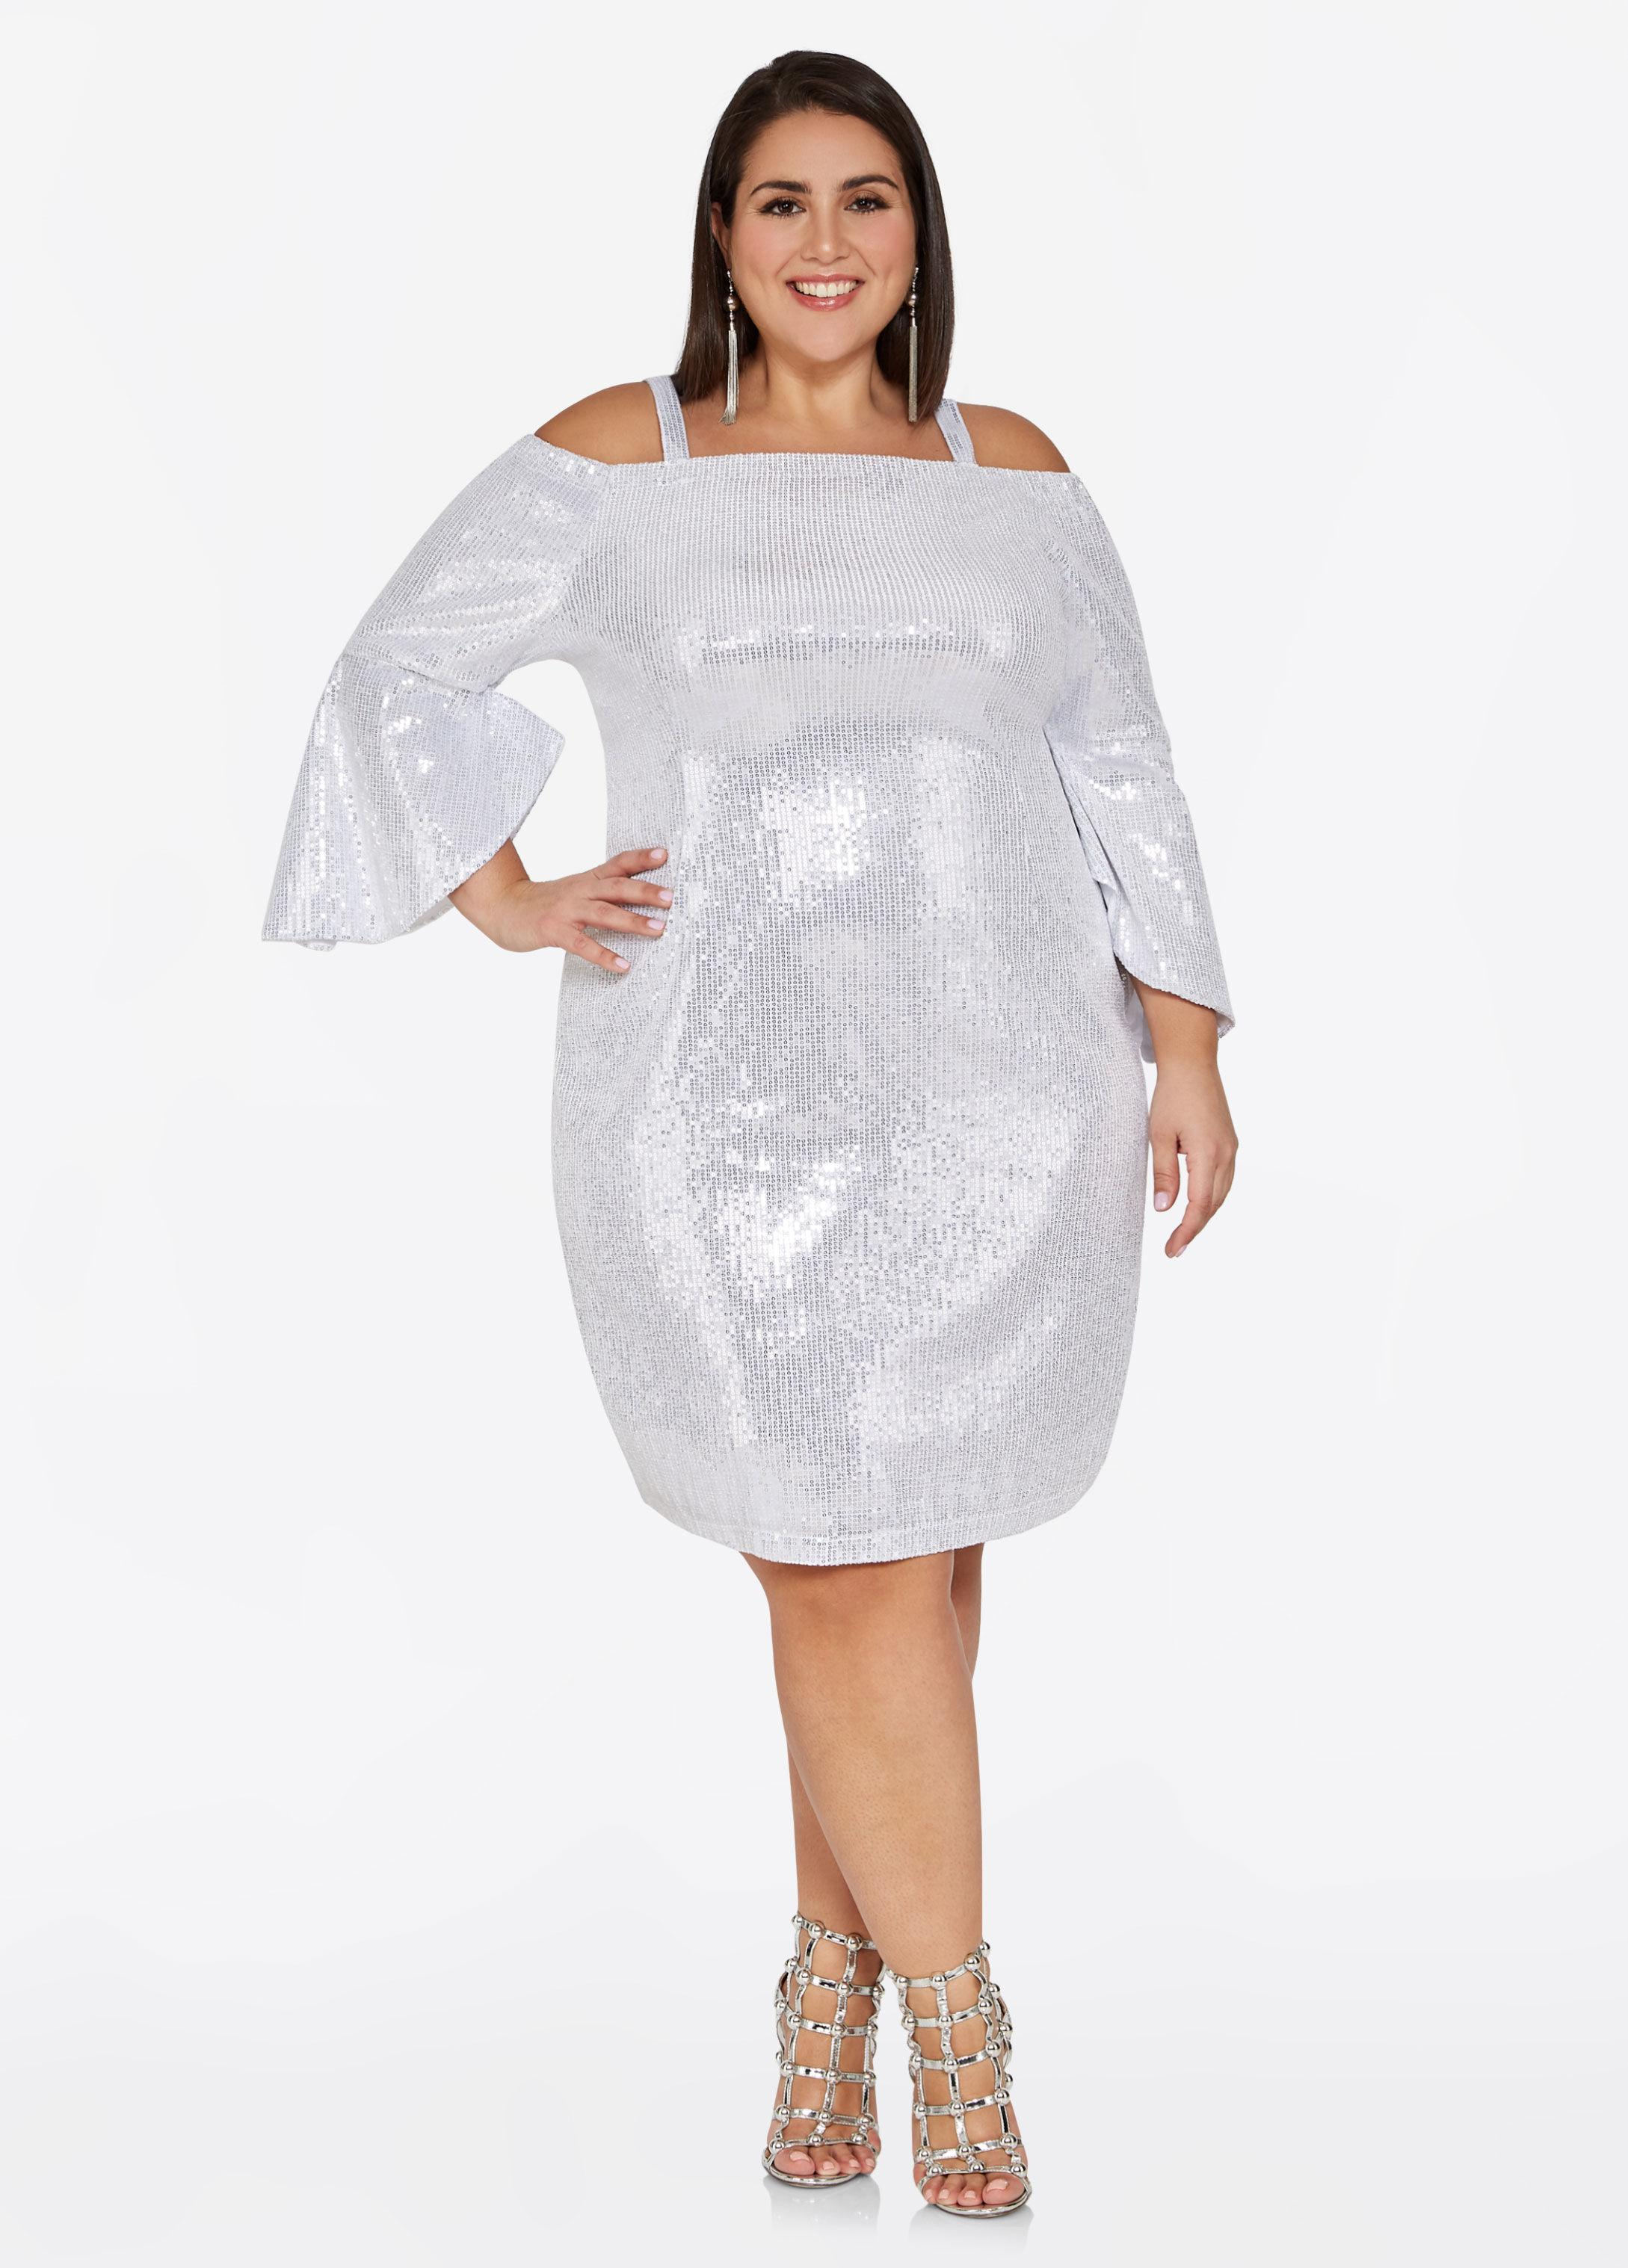 4dea2da075d Gallery. Previously sold at  Ashley Stewart · Women s White Cocktail Dresses  ...